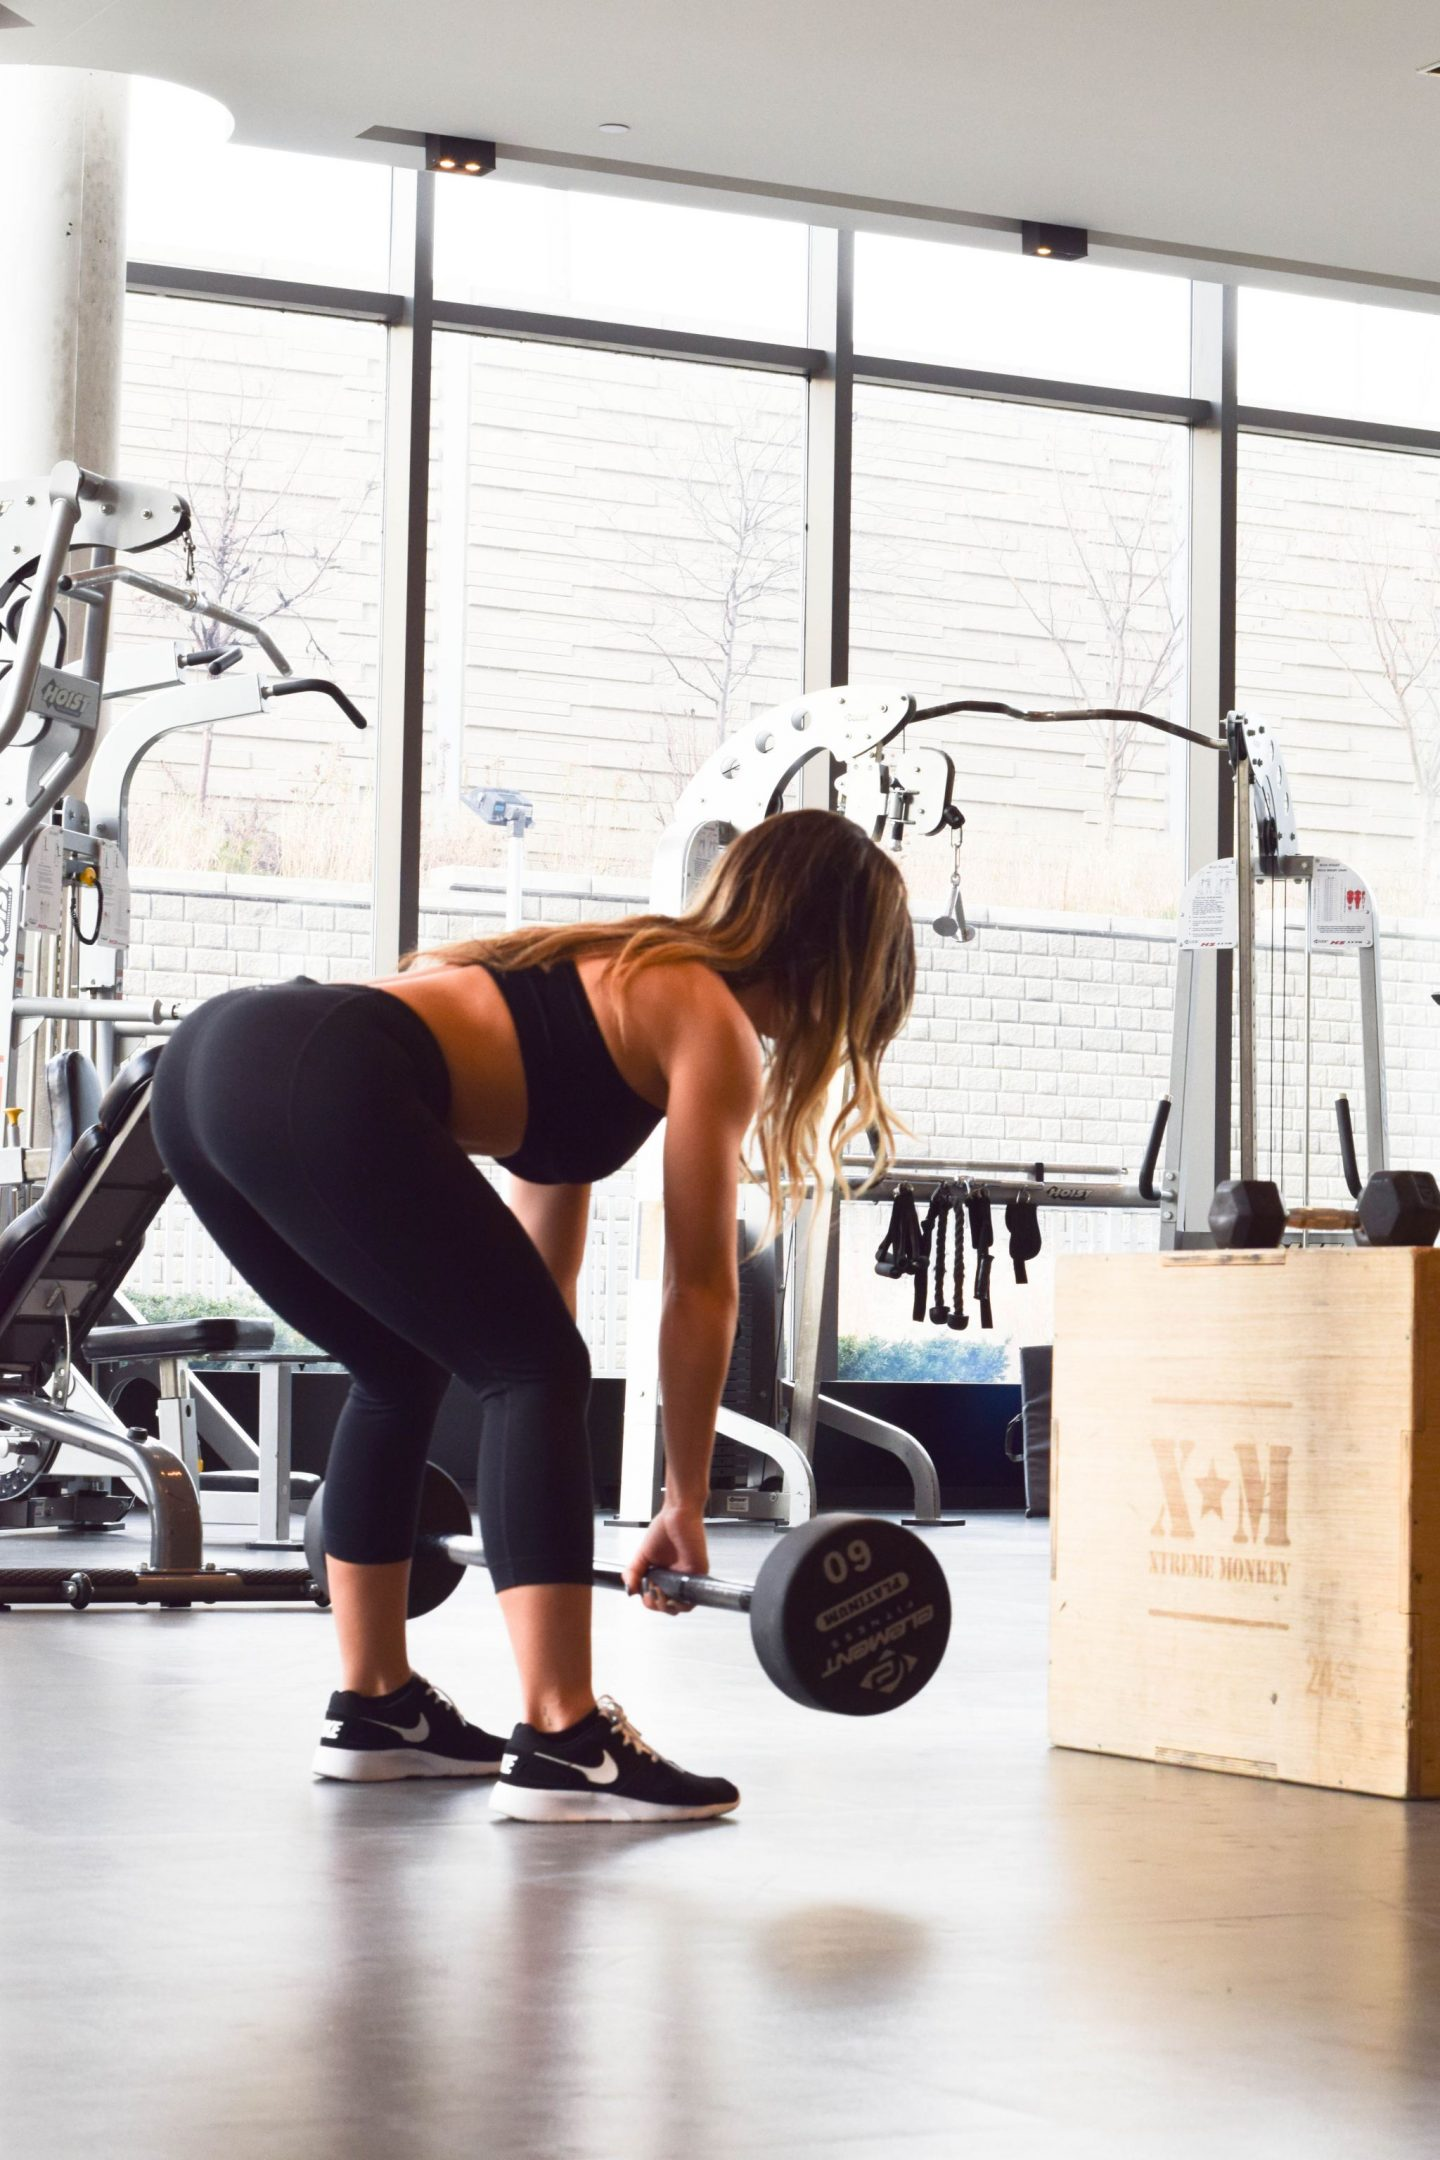 Fitness: A 30 Minute Workout That is Quick & Effective